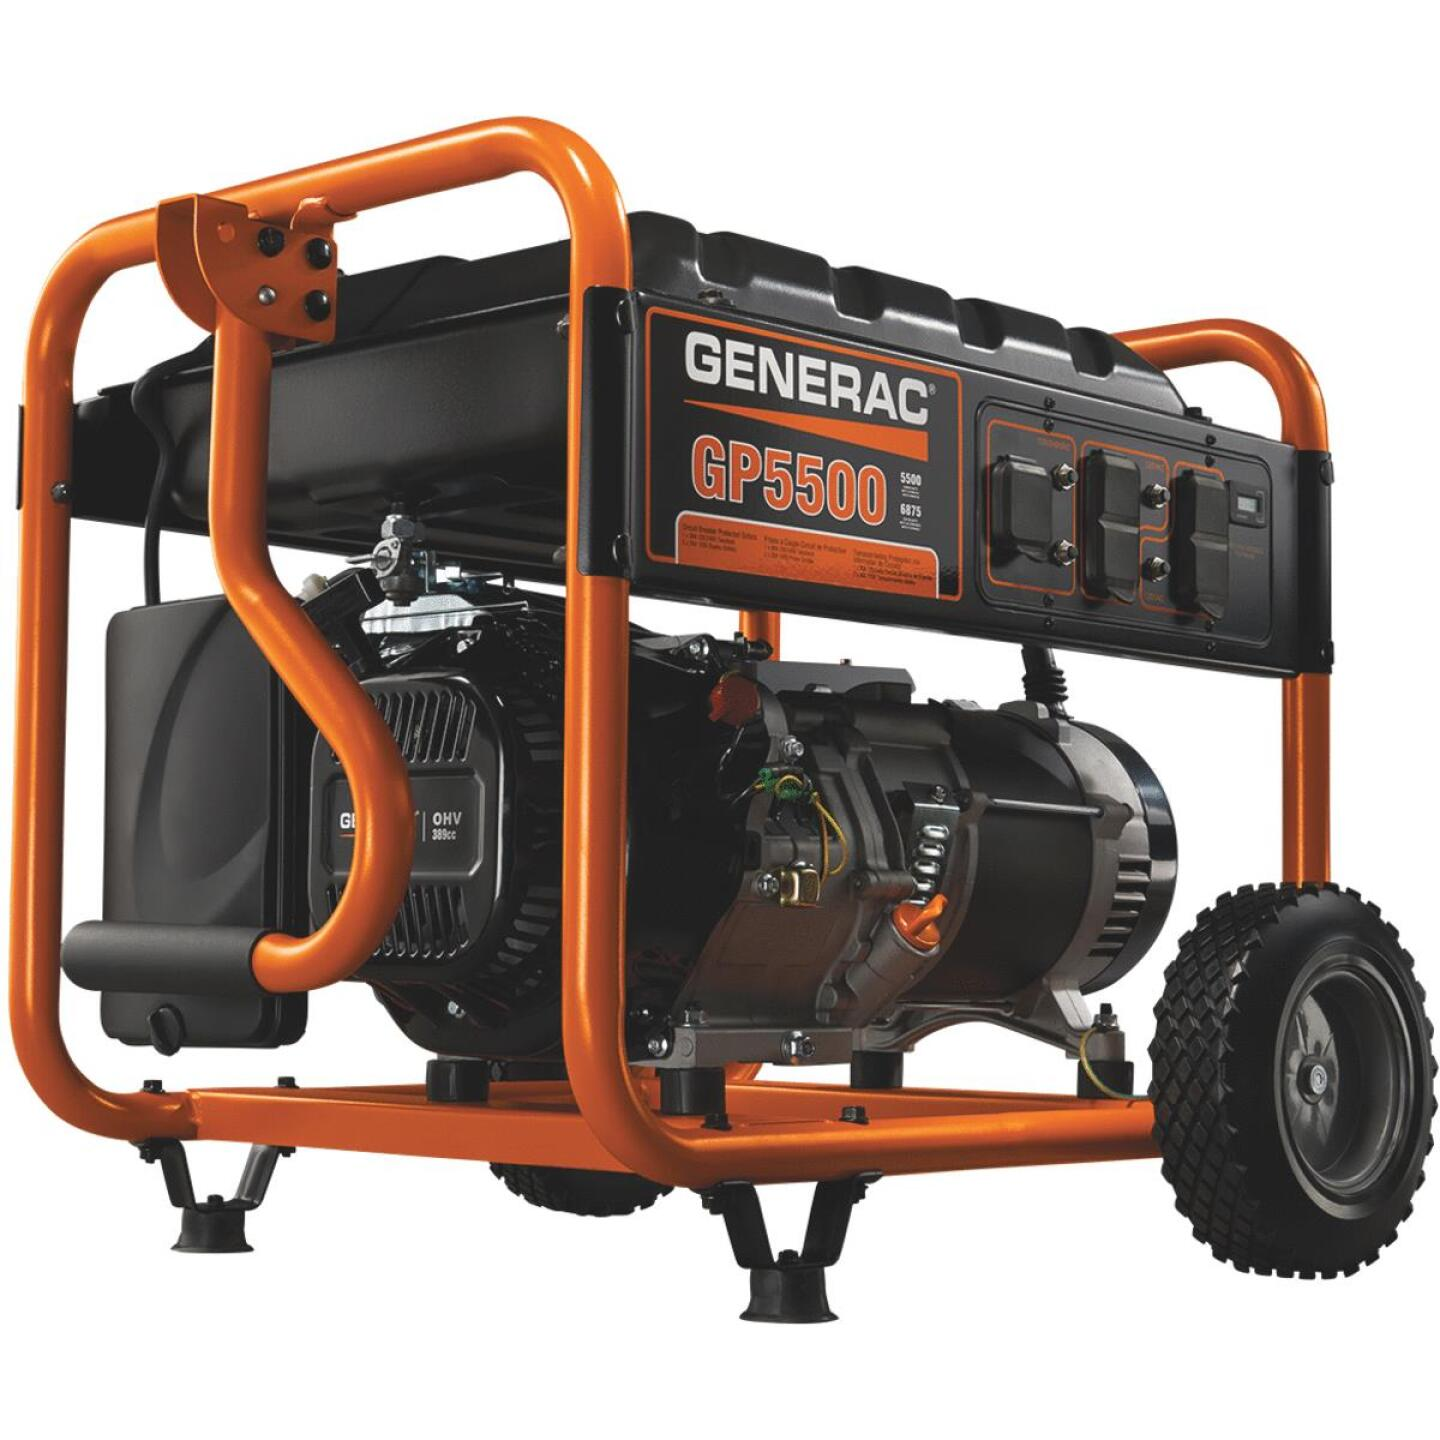 Generac 5500W Gasoline Powered Recoil Pull Start Portable Generator Image 1